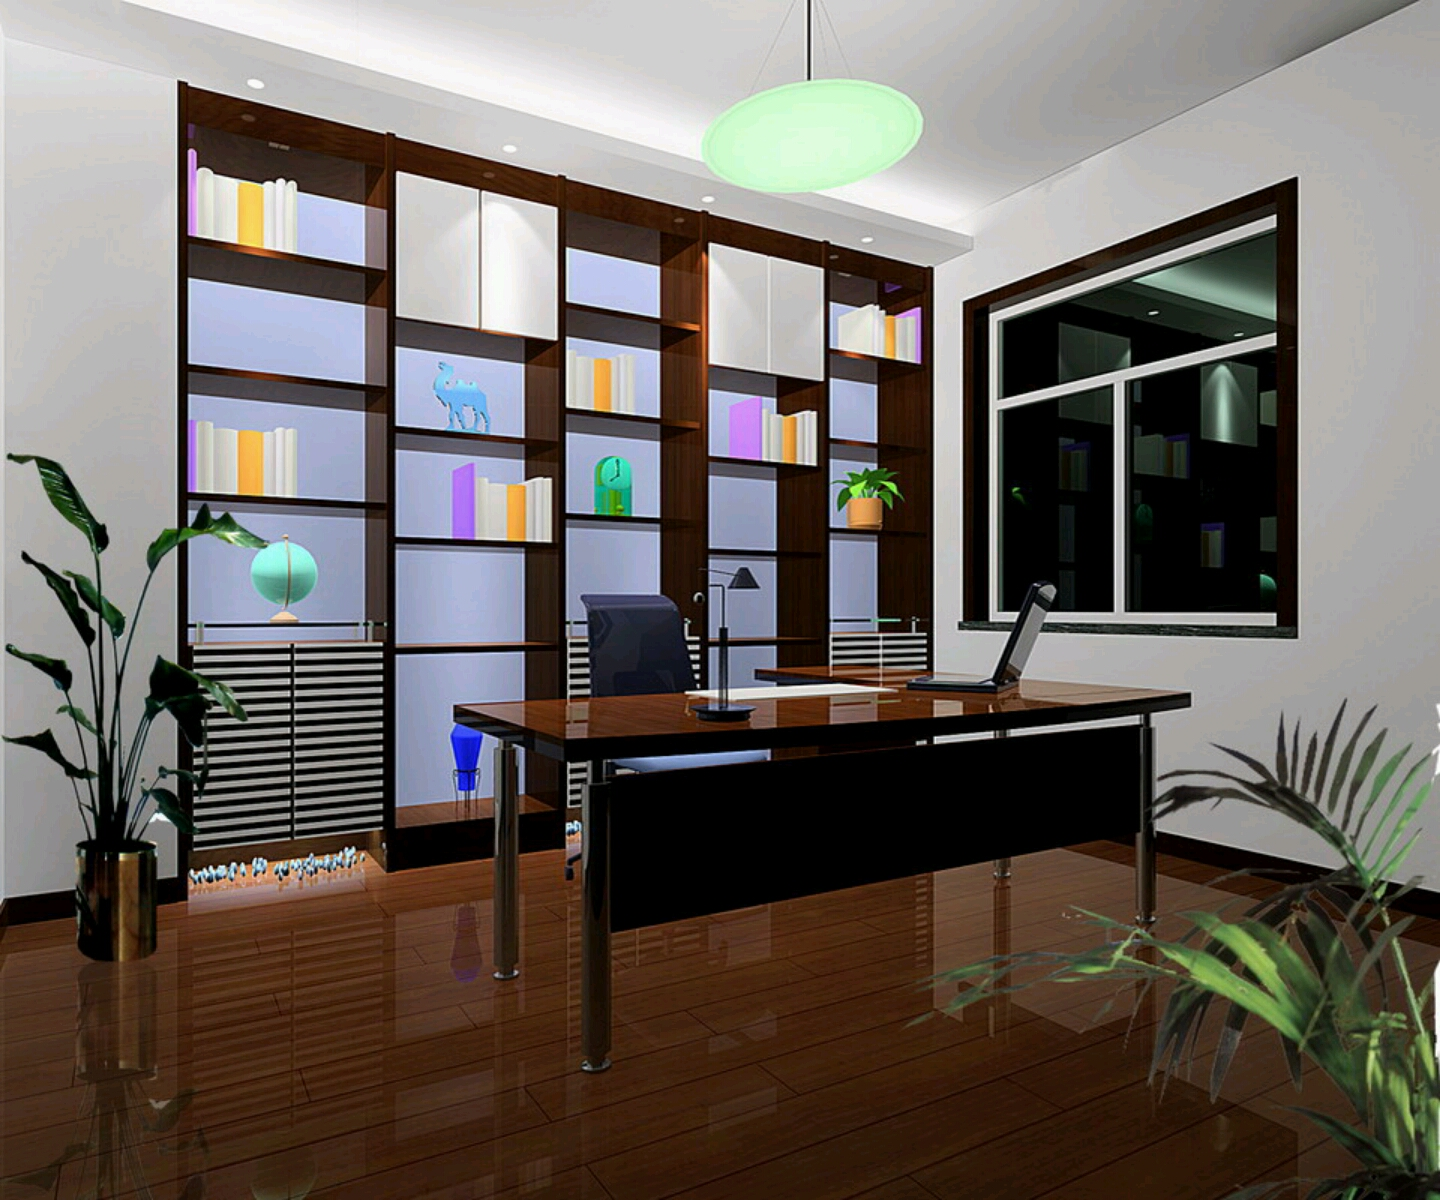 Rumah rumah minimalis study rooms designs ideas for Interior designs study room